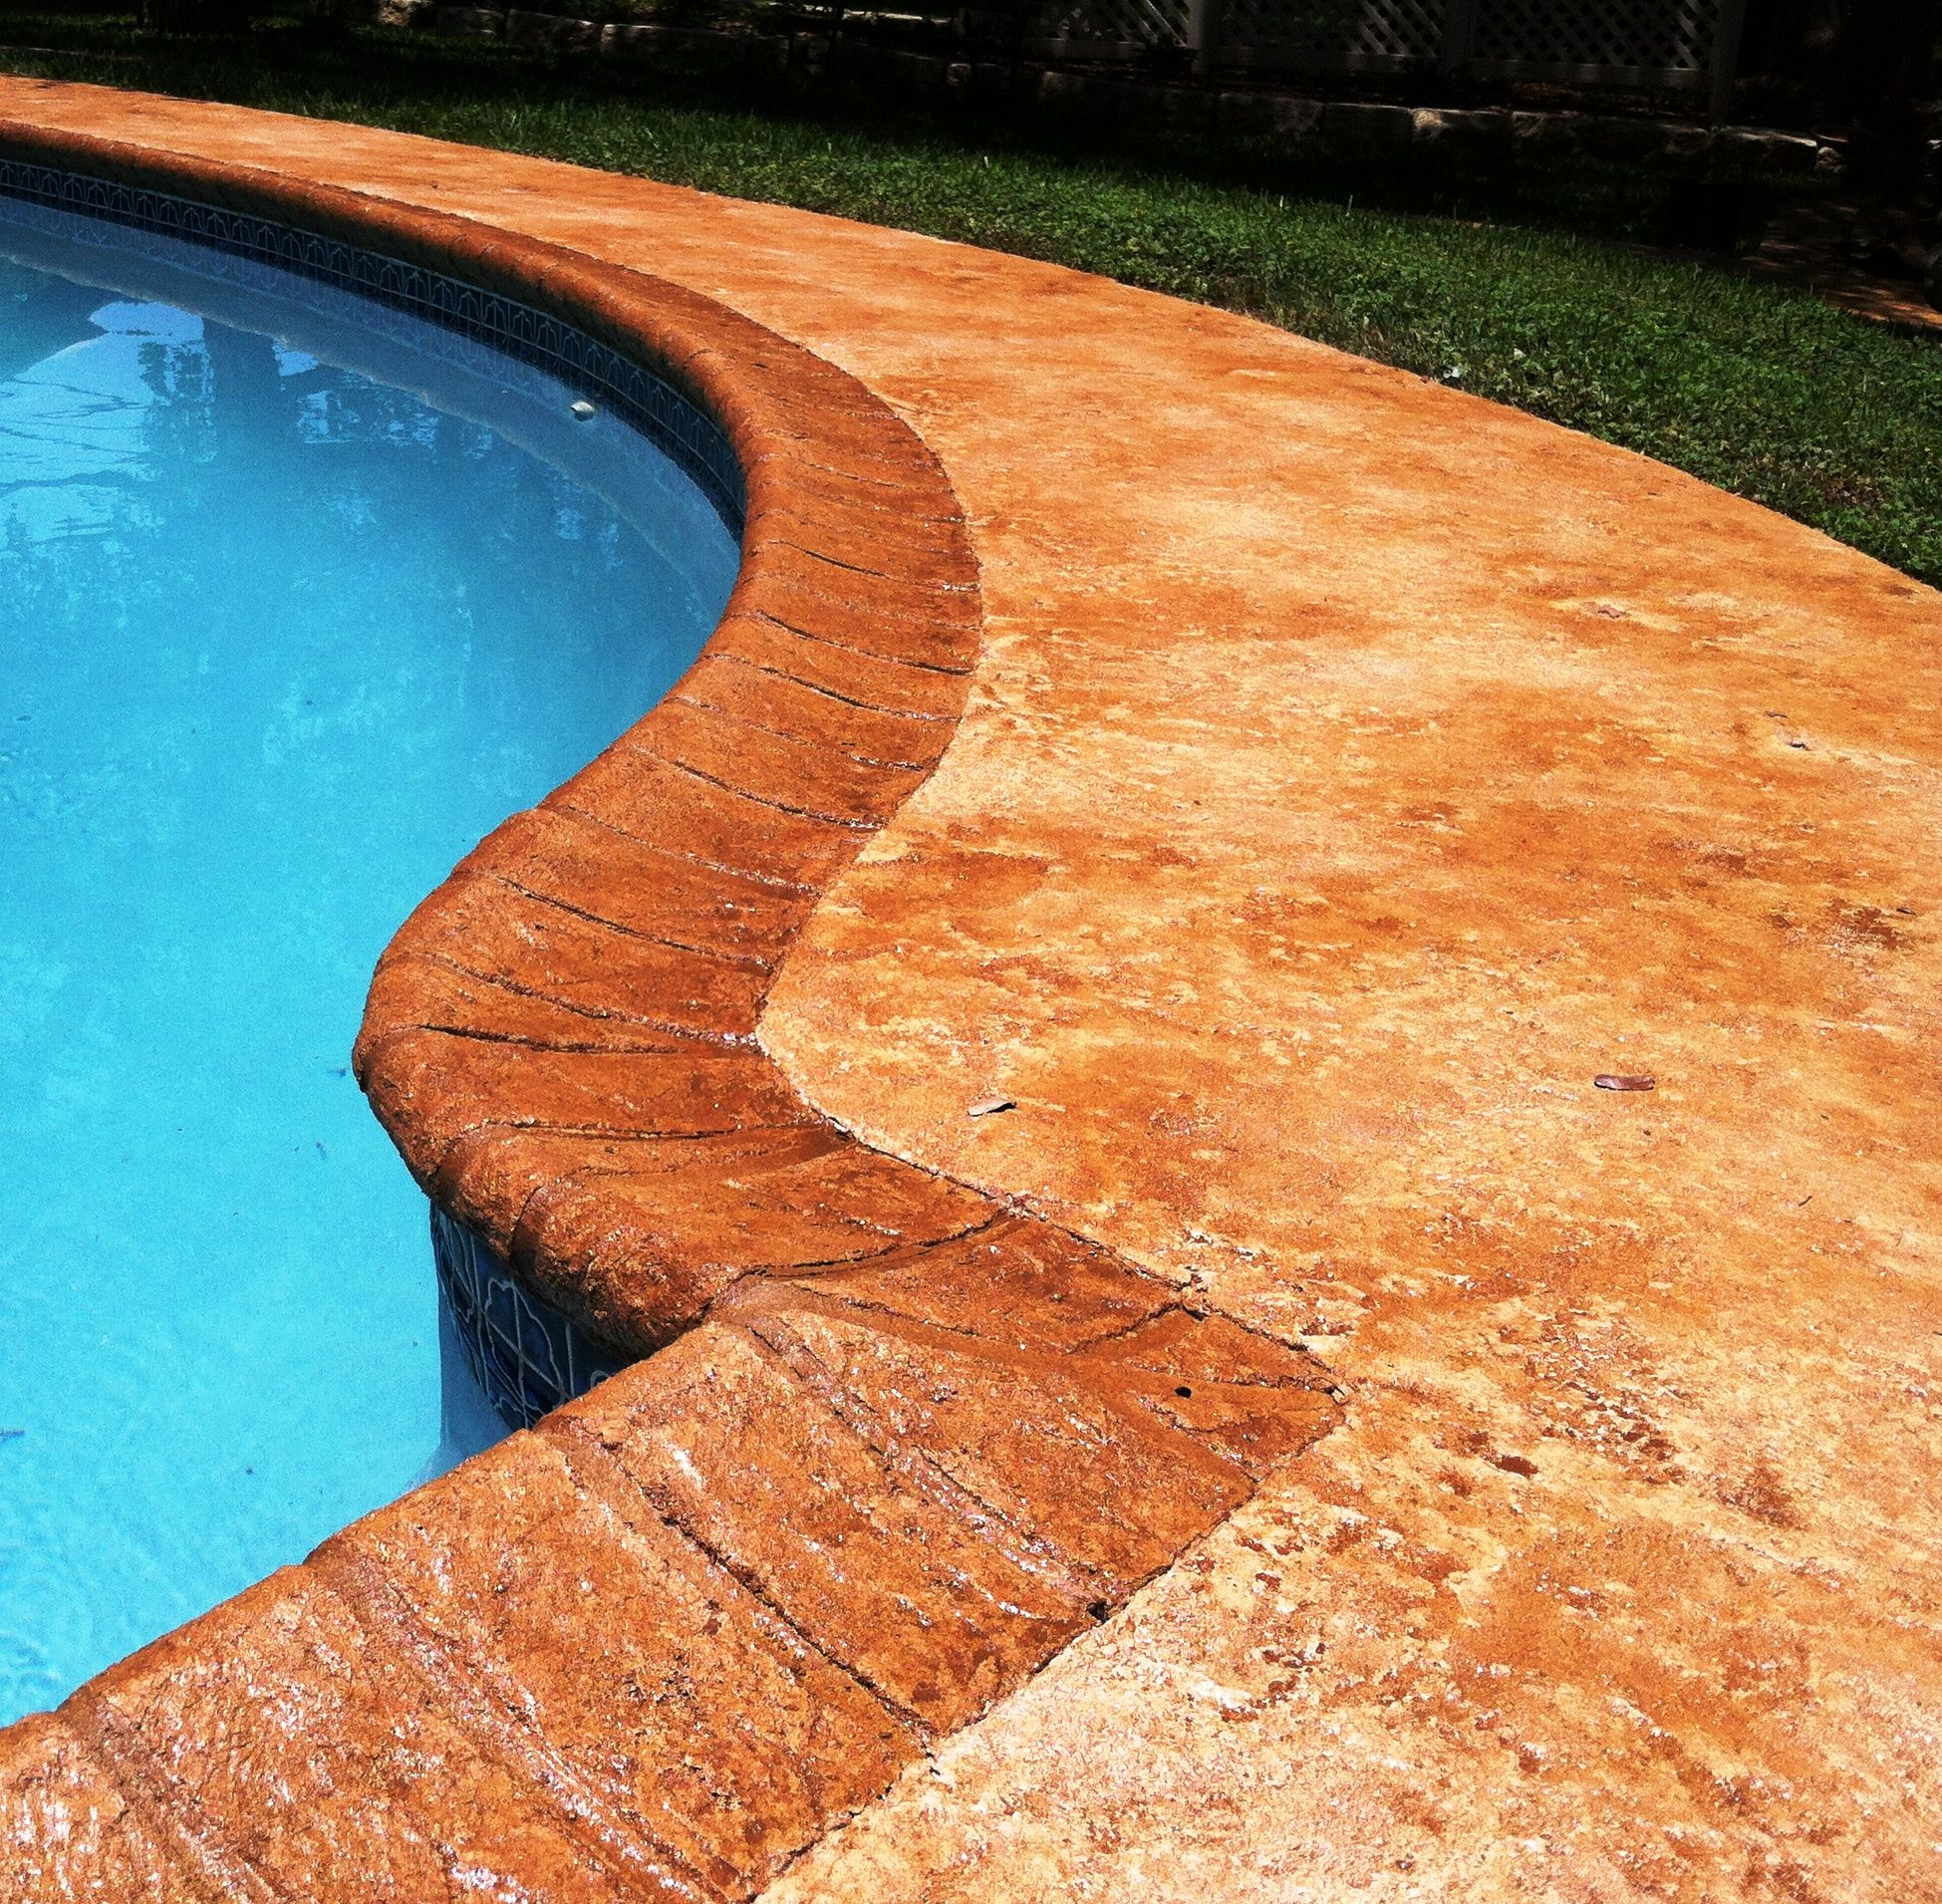 Sundek SunStamp Decorative Concrete Overlay System For A Pool Deck And  Coping Stones. Www.